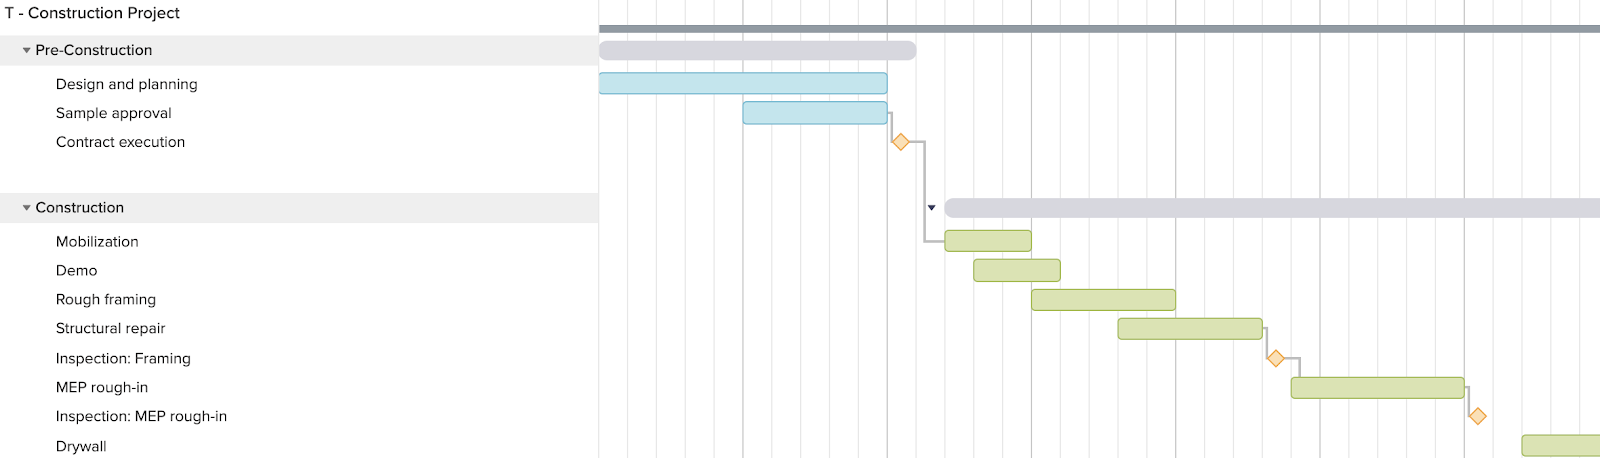 construction gantt chart template